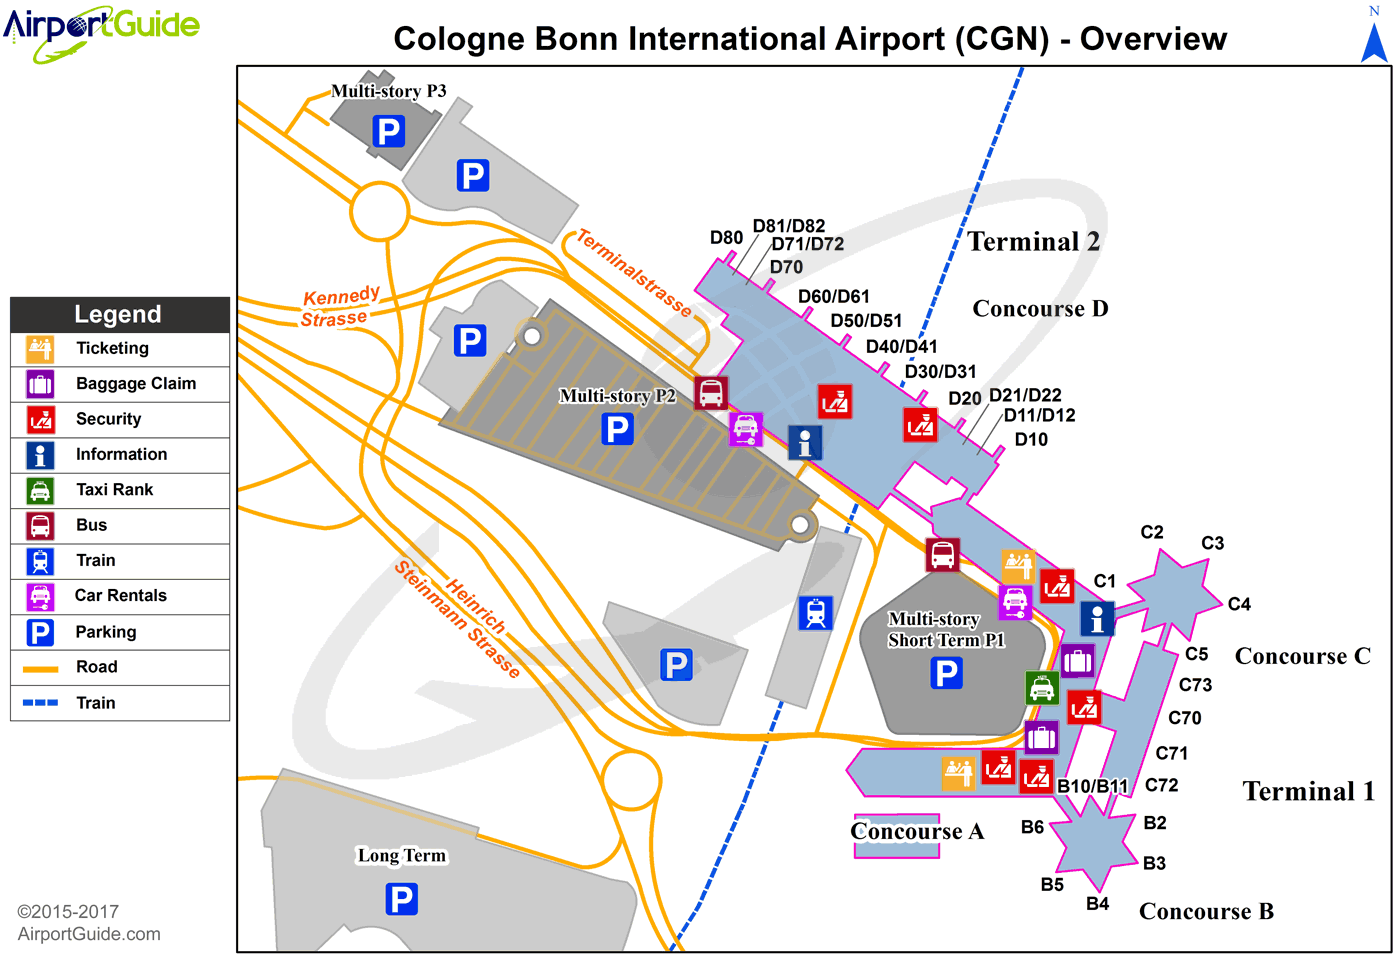 CGN Airport Terminal Map - Overview